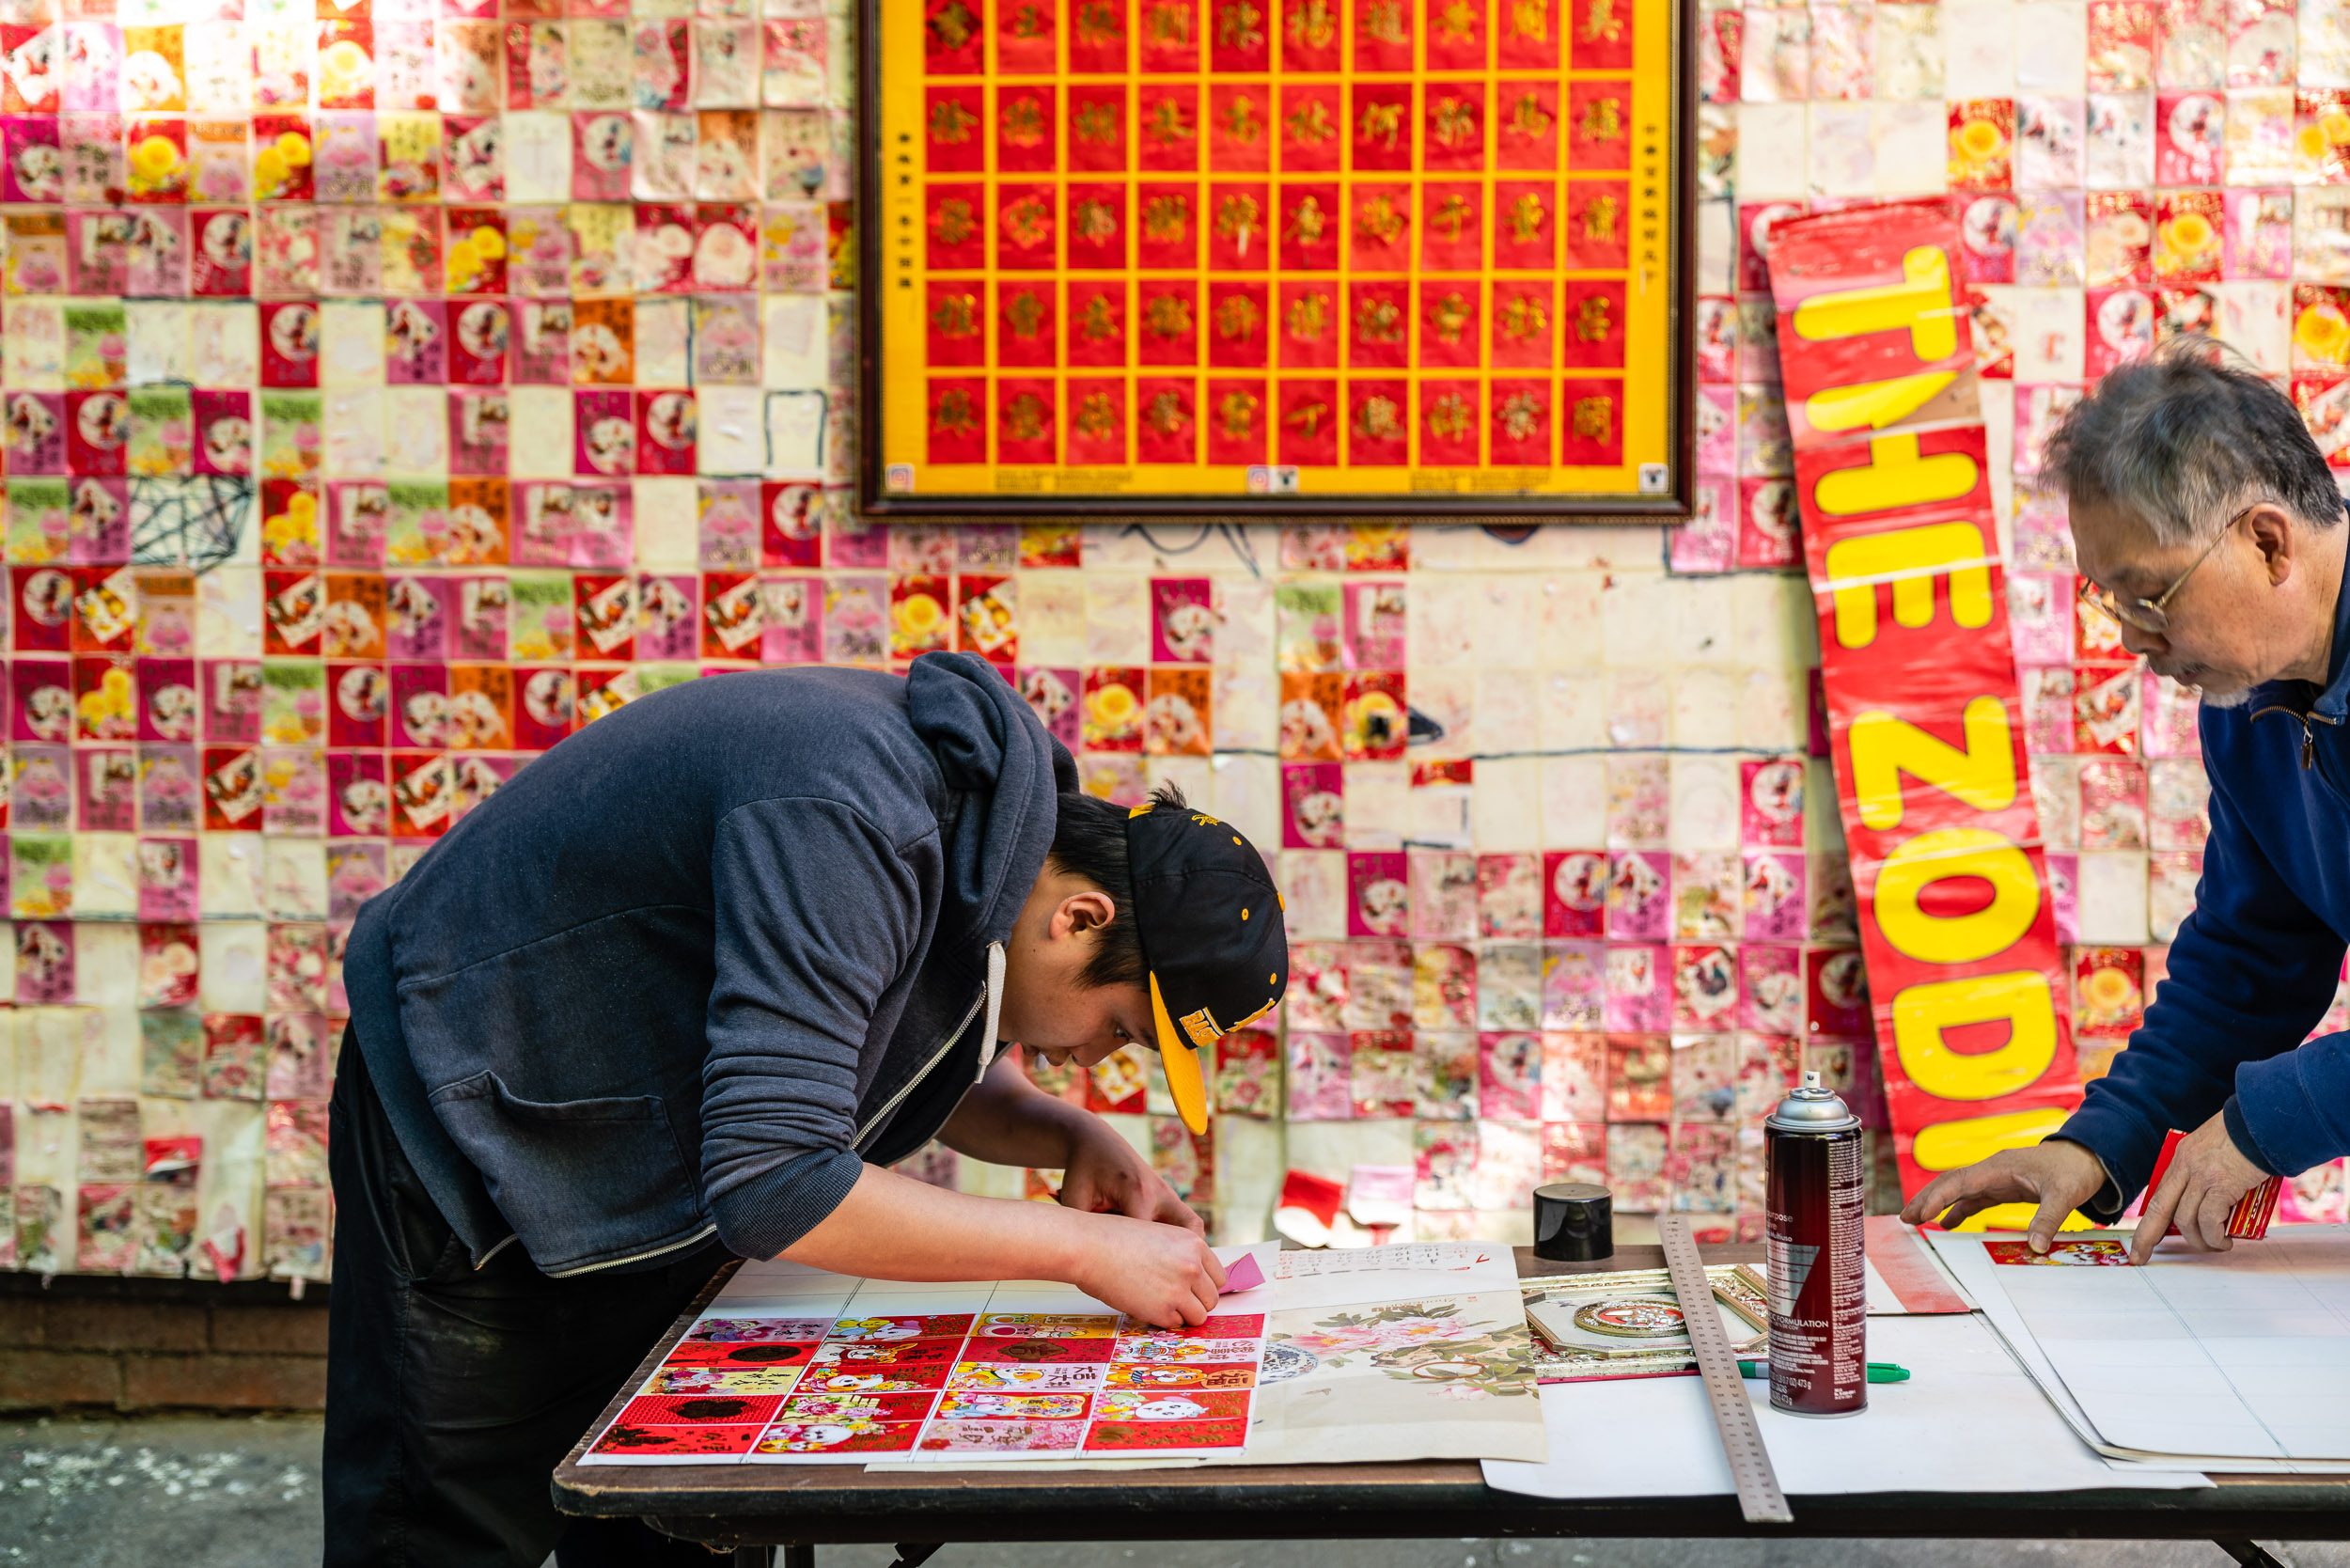 During our escapades we ran into these two artists doing repair work to this art installation consisting entirely of Chinese red envelopes.